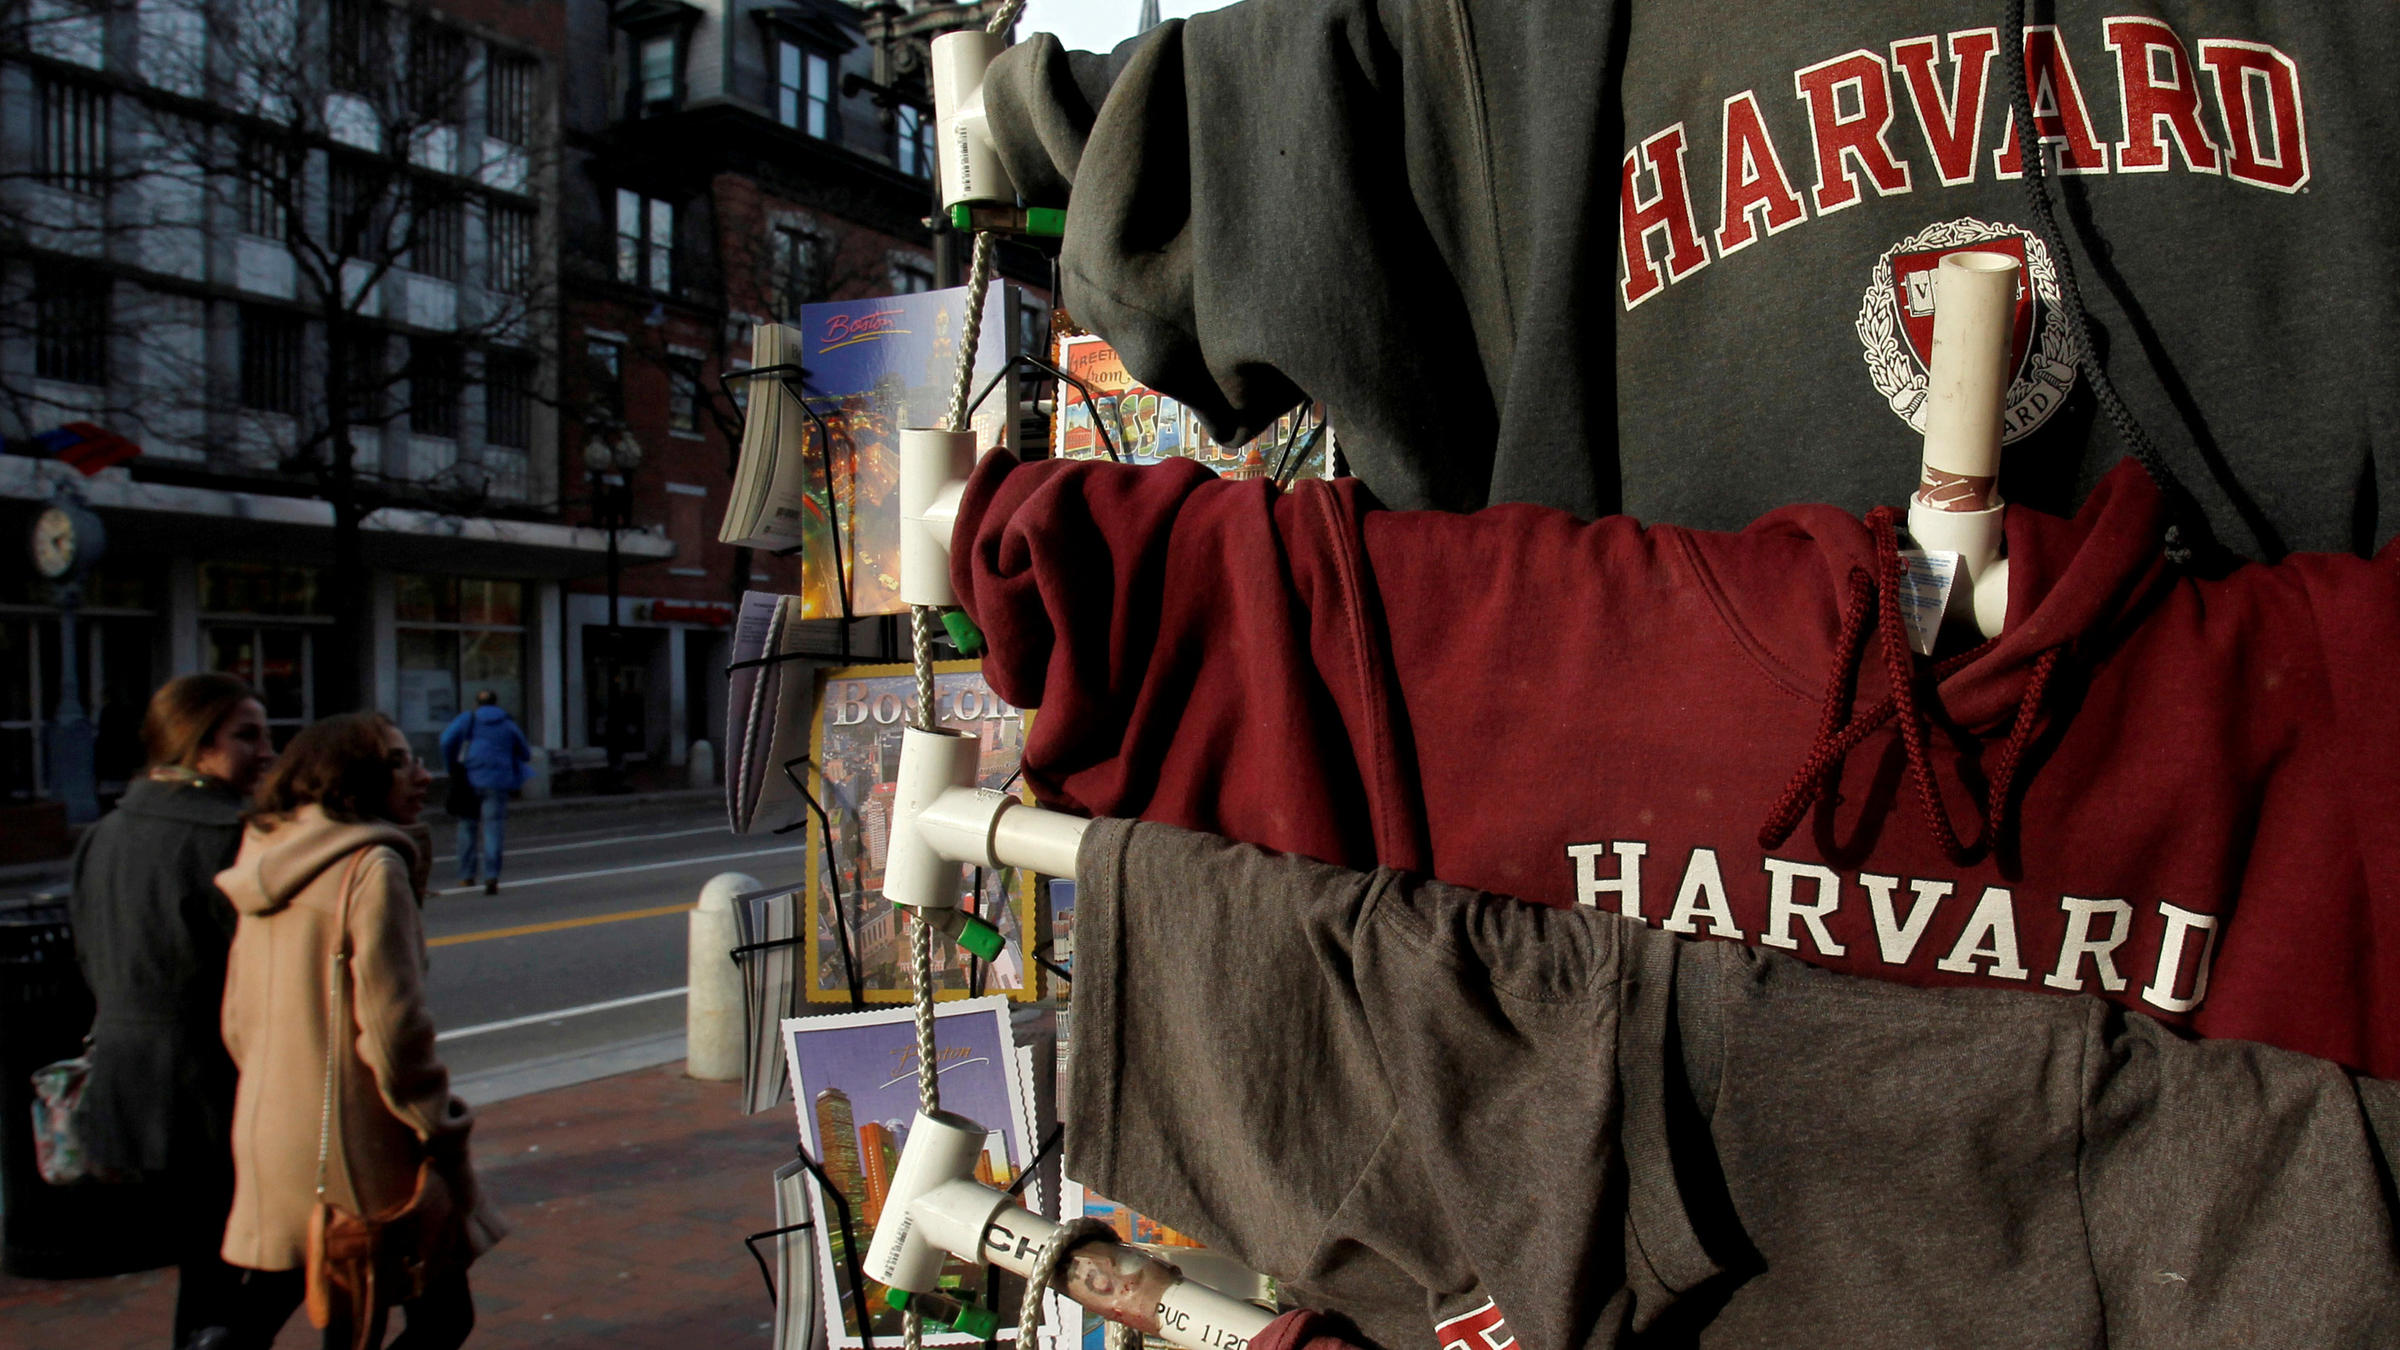 Harvard rated Asian-American applicants lower on likability, courage, according to suit